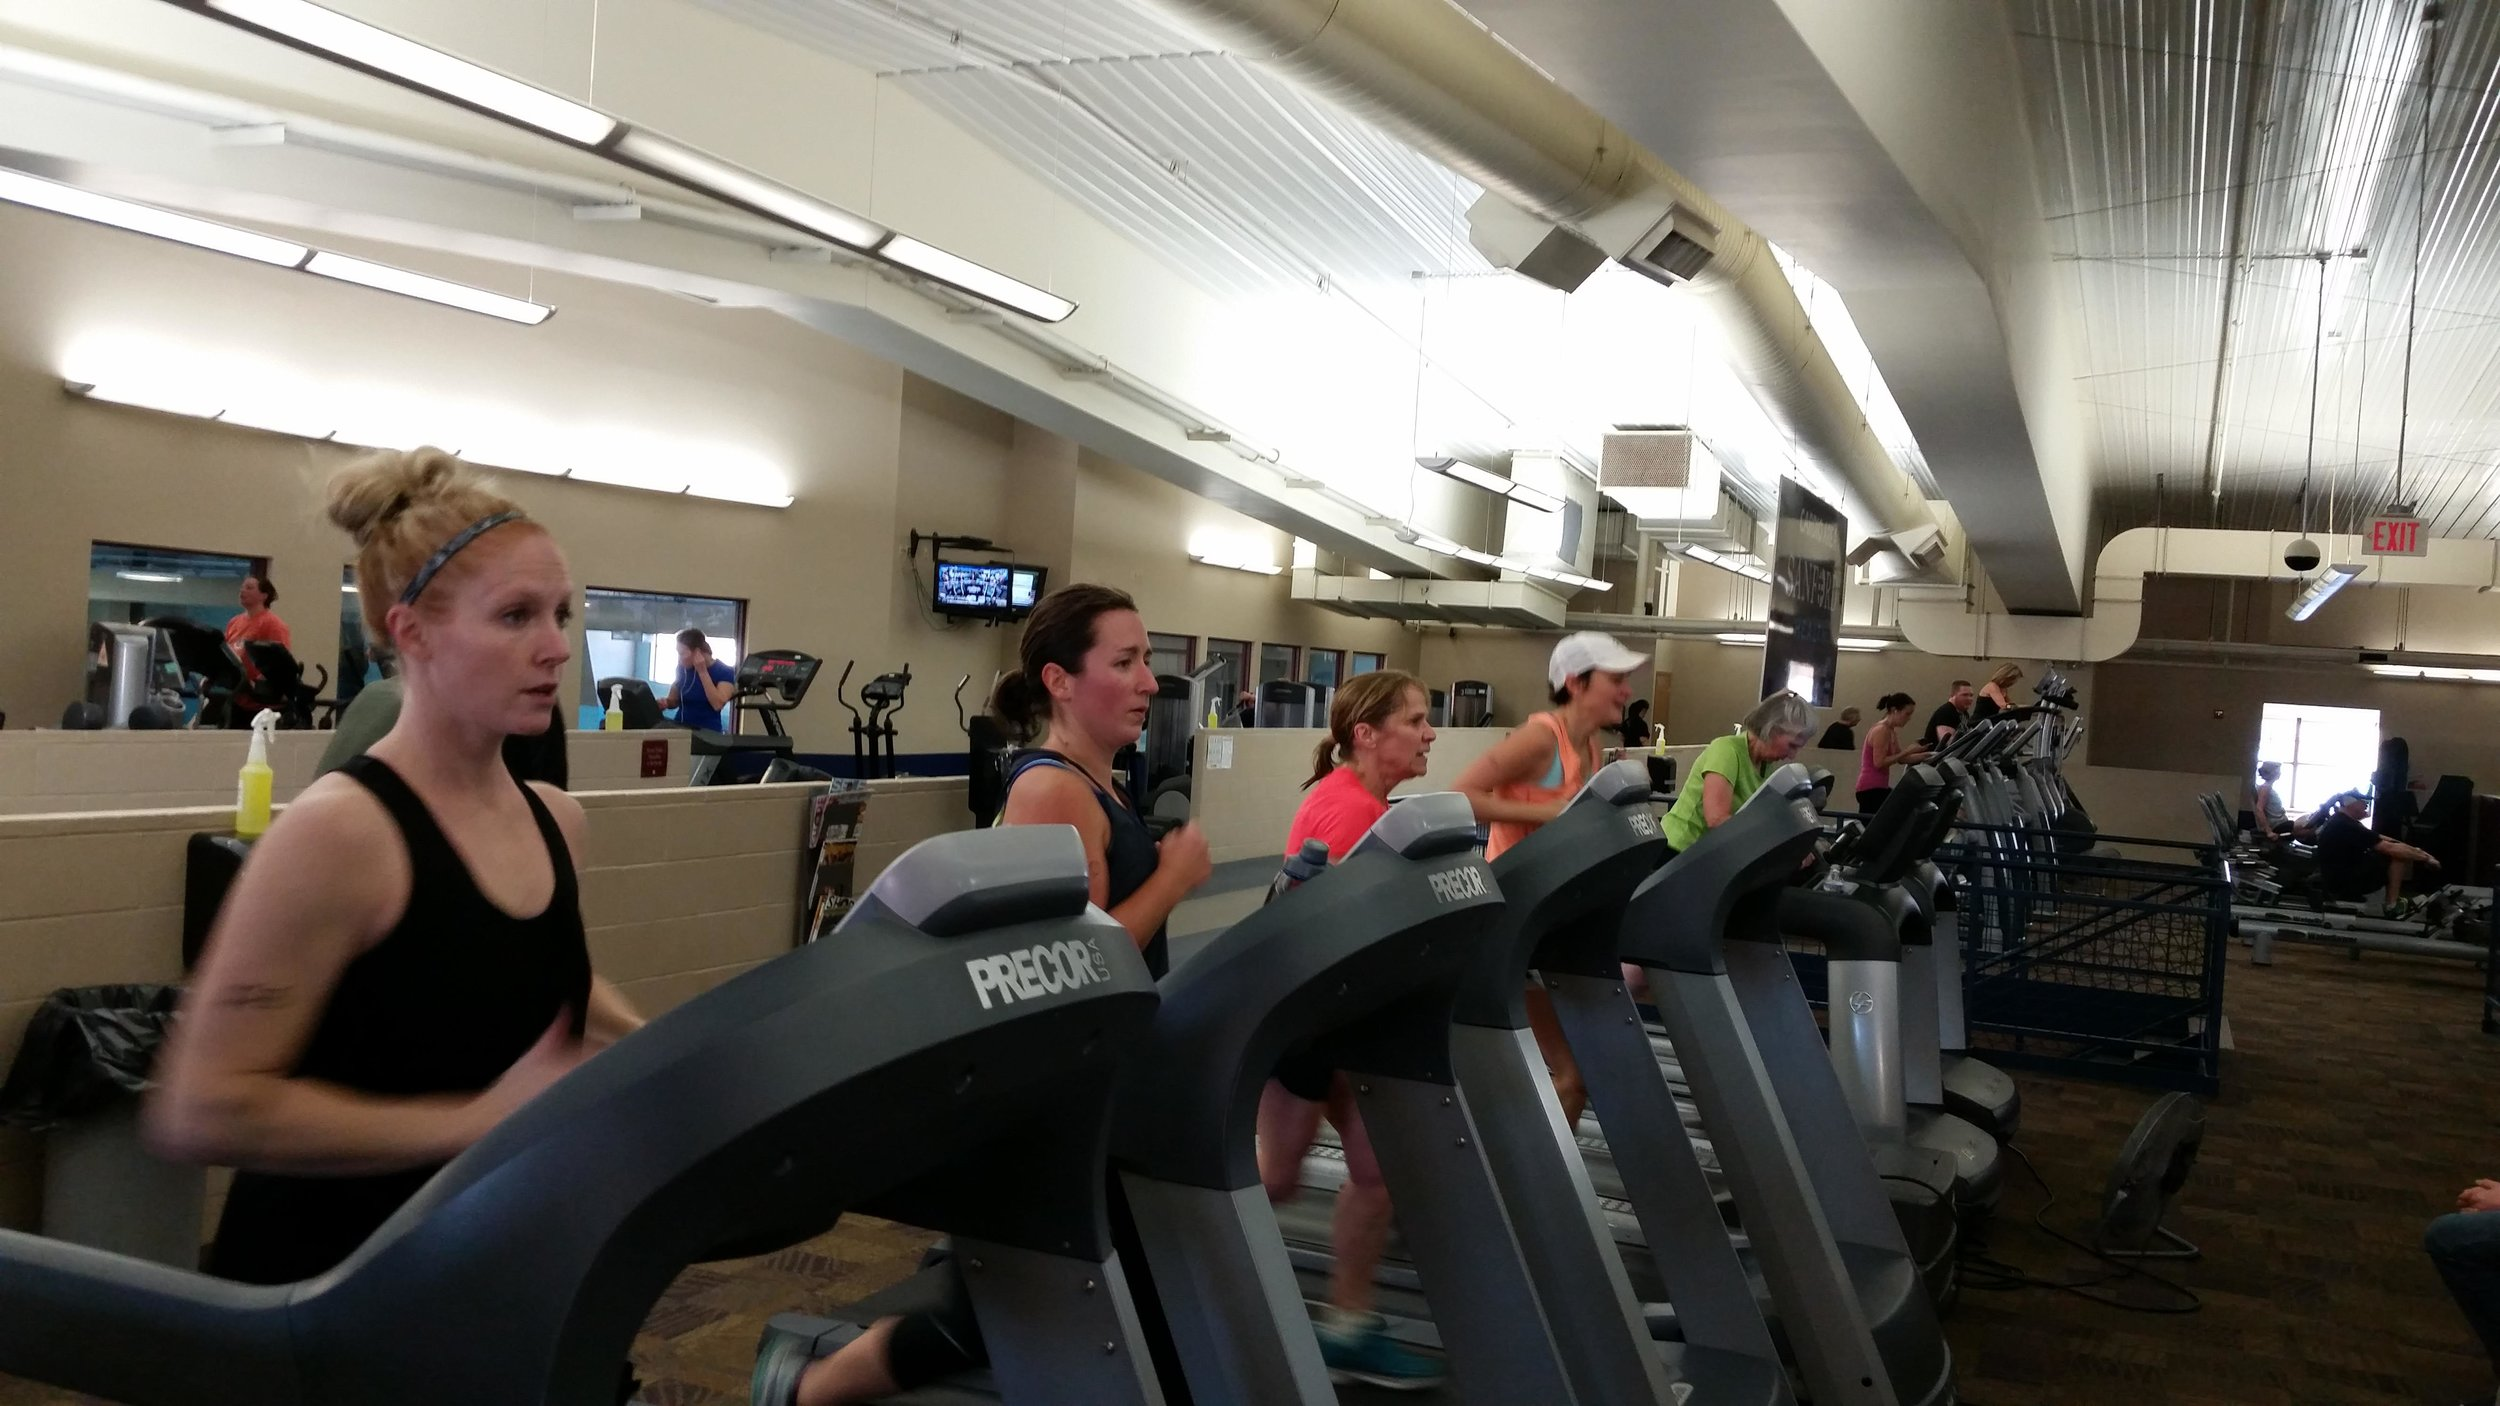 Competitors at the DLCCC's Indoor Triathlon push themselves to get in as many miles as possible during their 20-minute run on the treadmill, one of three phases that they must complete during the event. This year's triathlon is set for Saturday, Feb. 2. (Submitted photo)